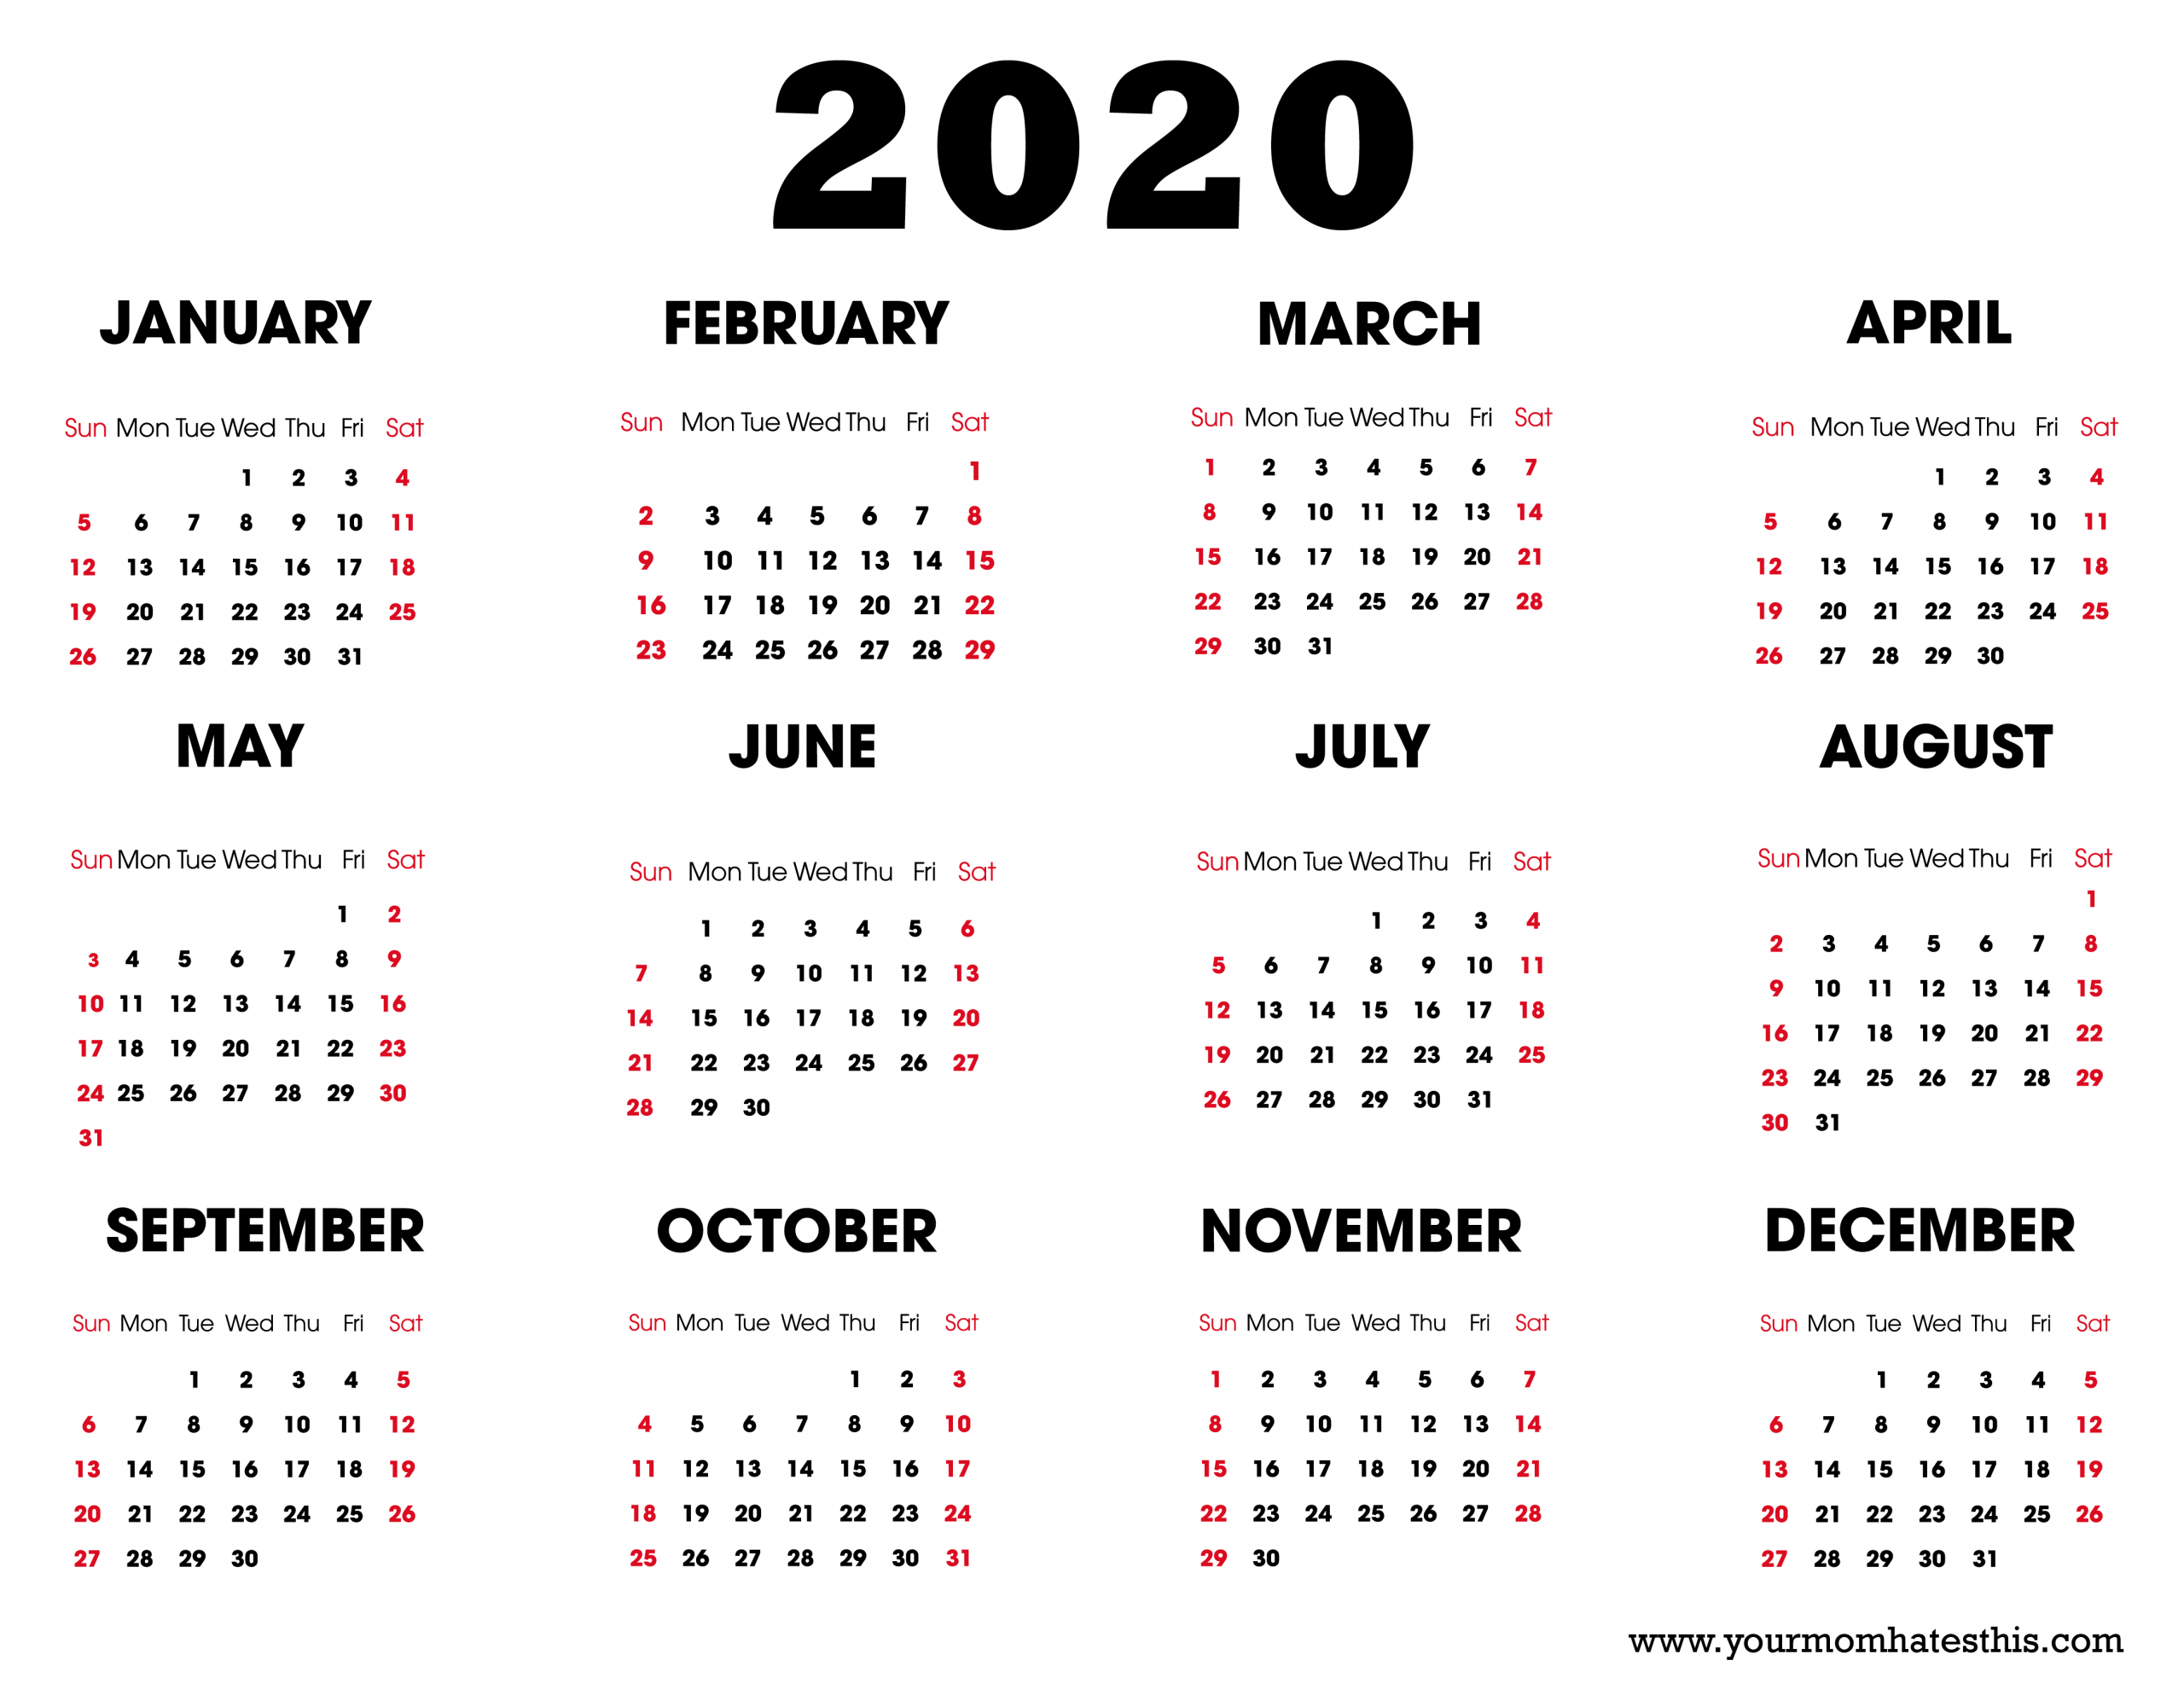 2020 Calendars In Pdf - Download Templates Of Calendar 2020